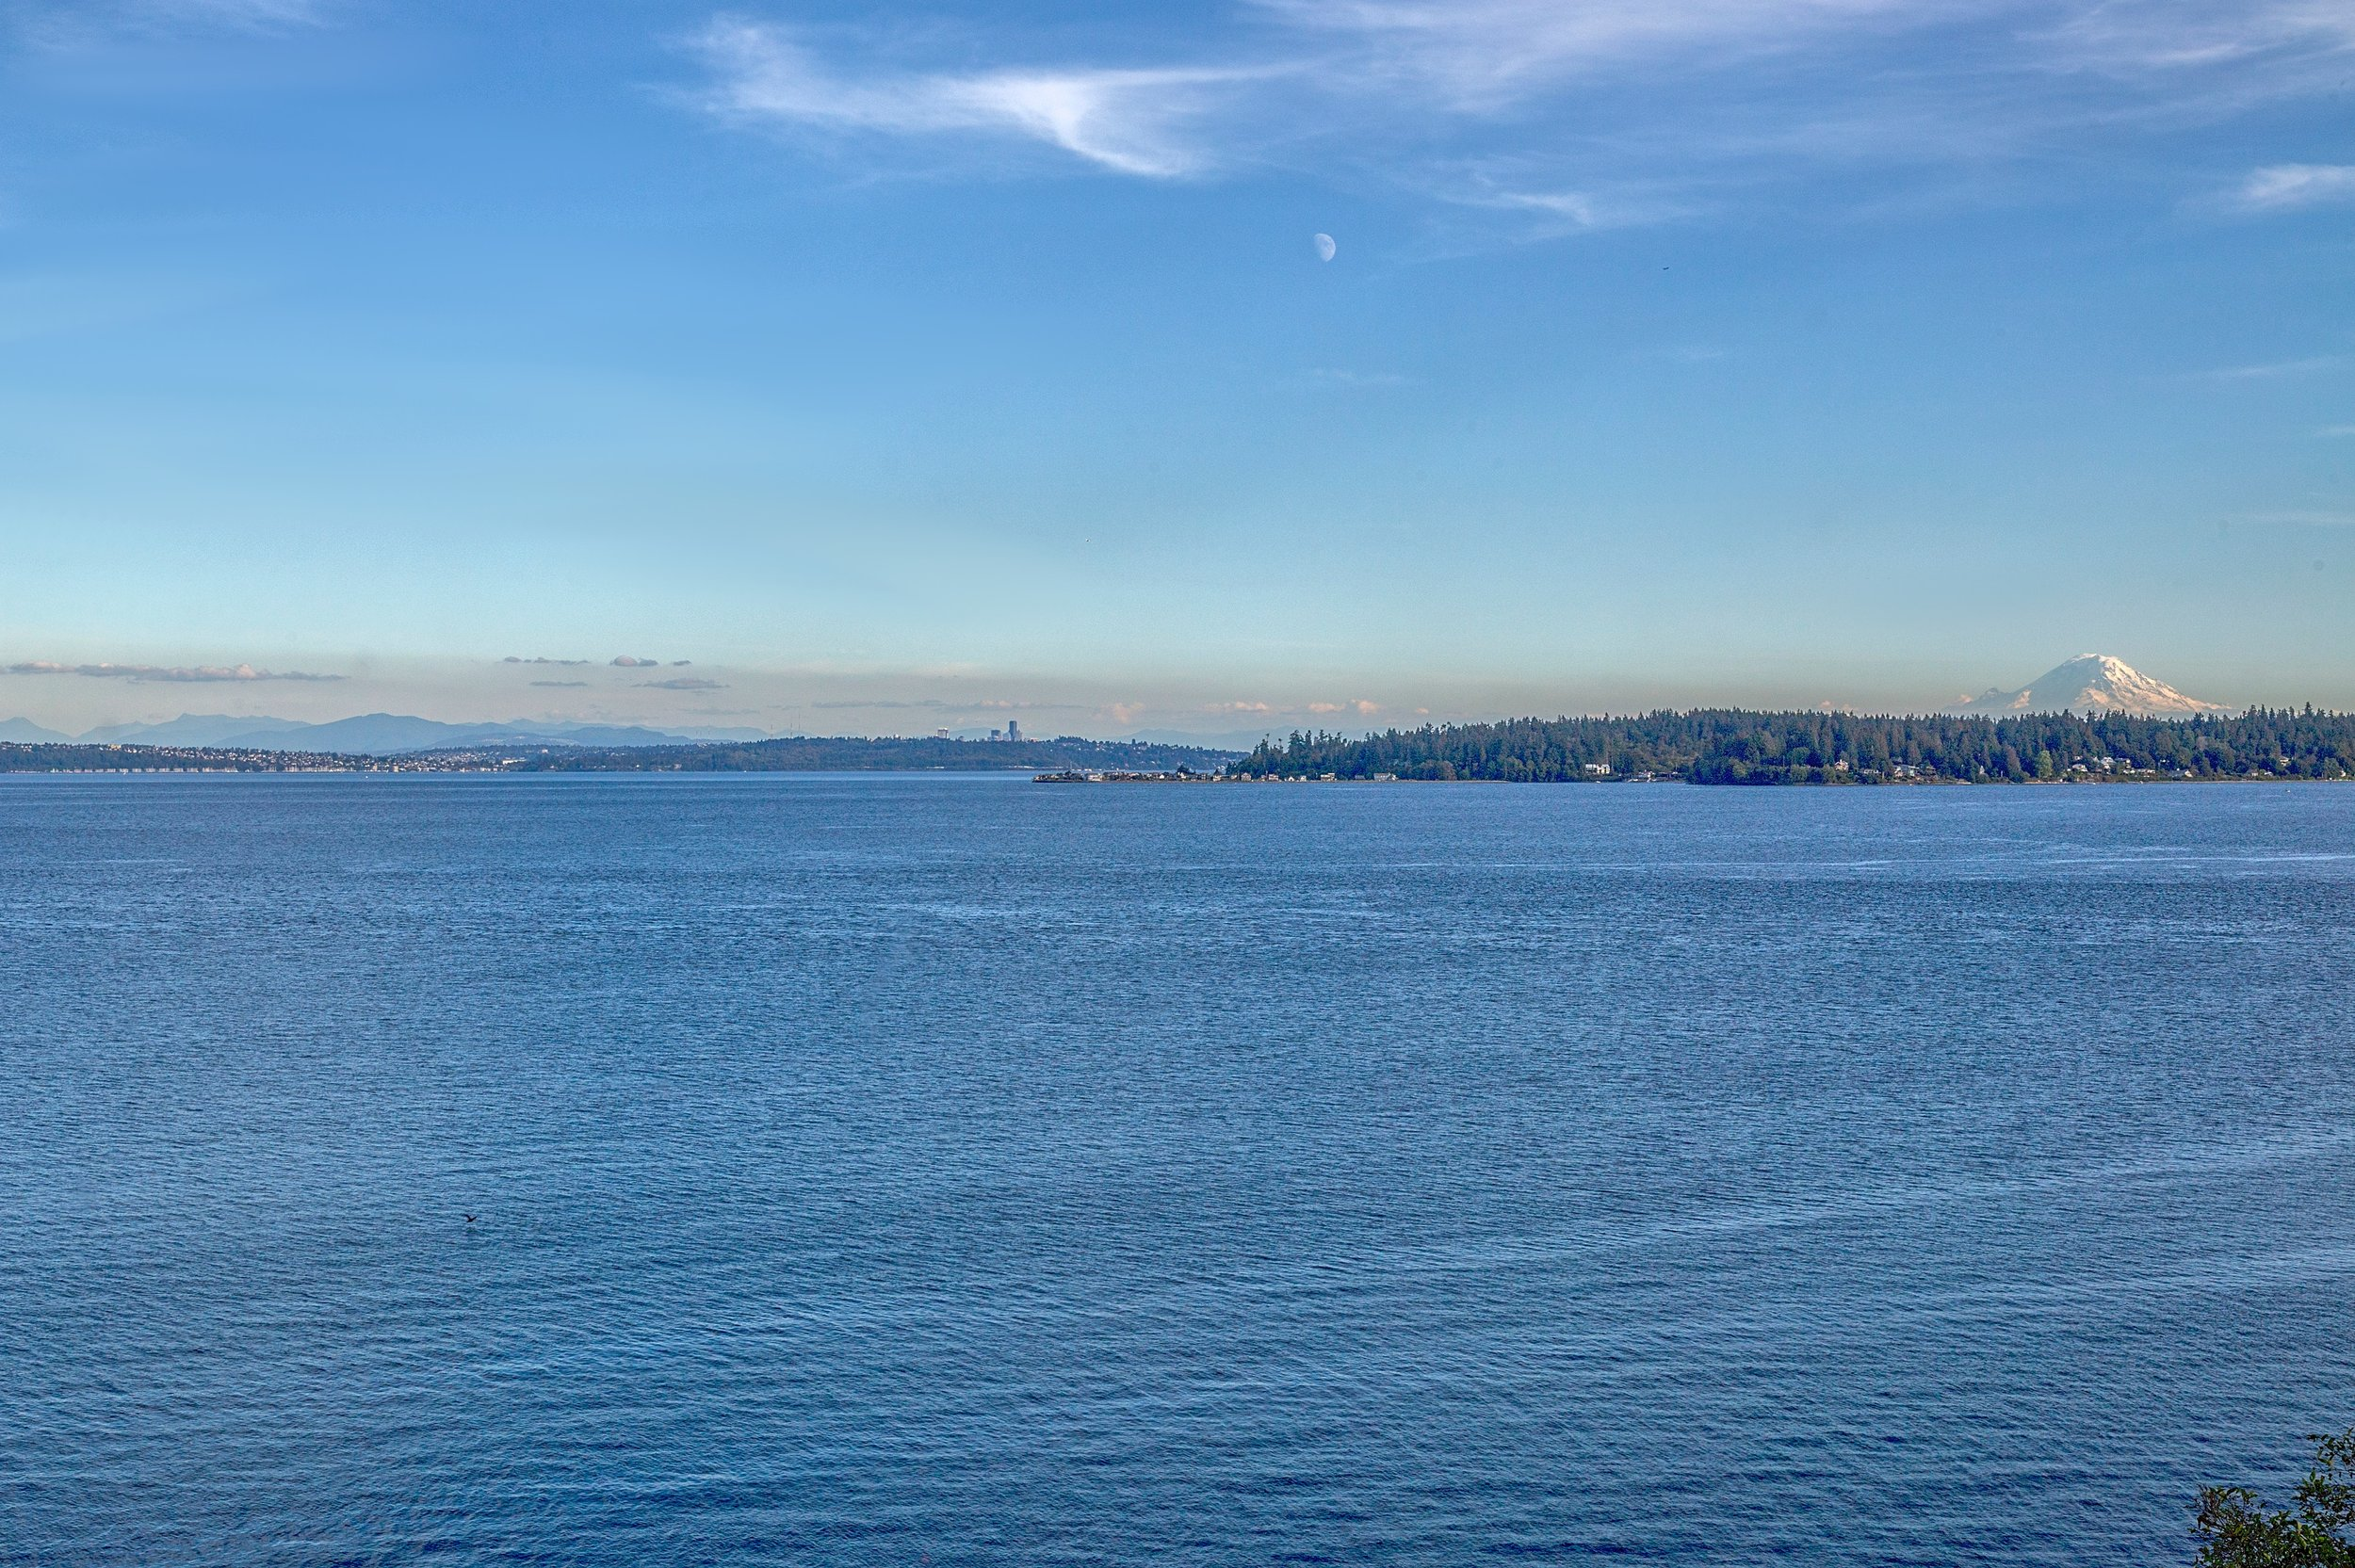 Some views of Mt Rainier and Seattle from a shoot in Suquamish.